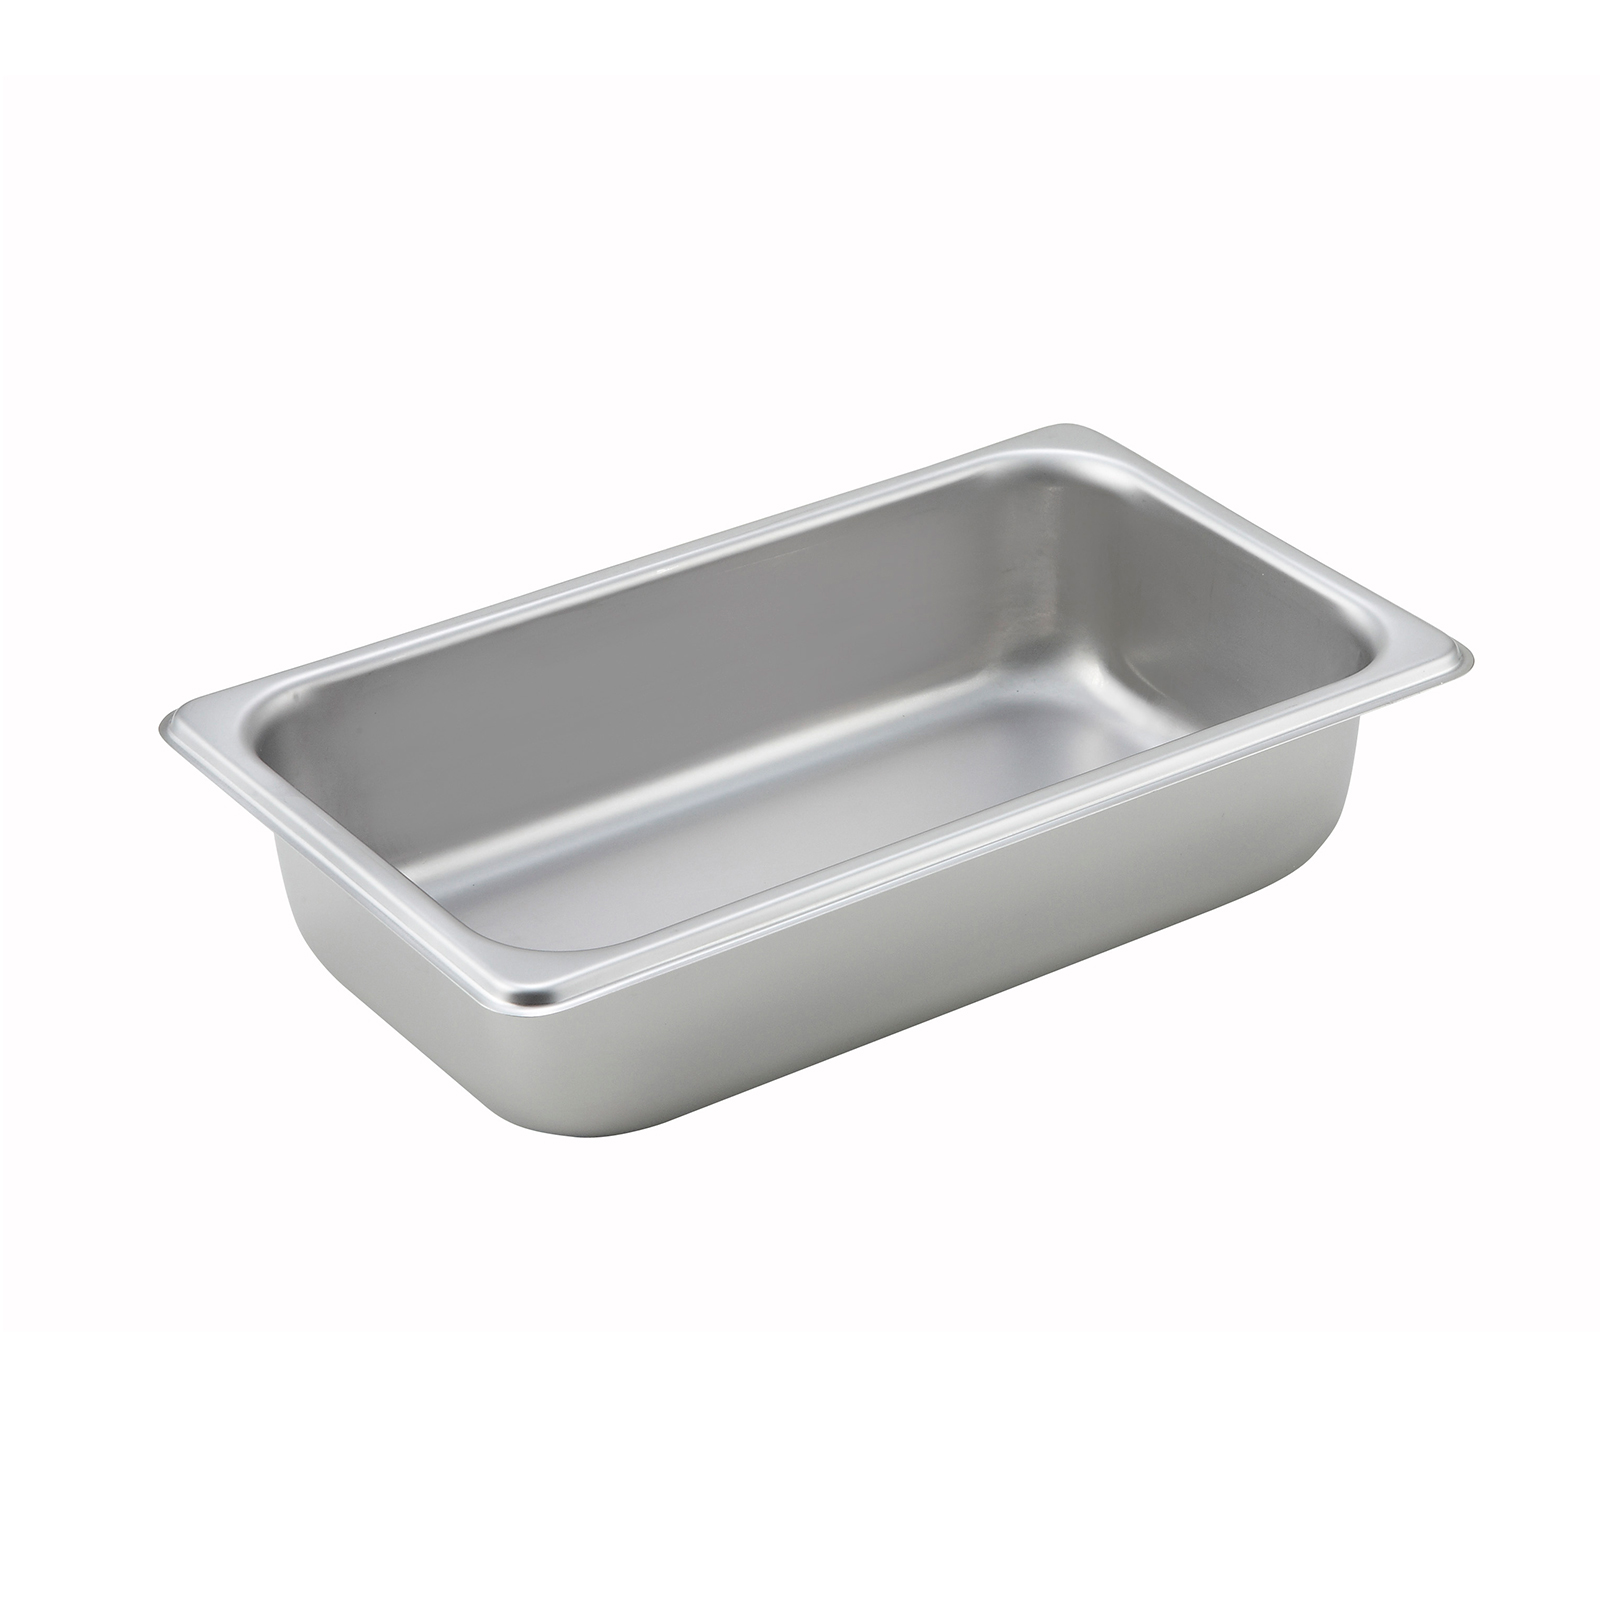 Winco SPQ2 steam table pan, stainless steel